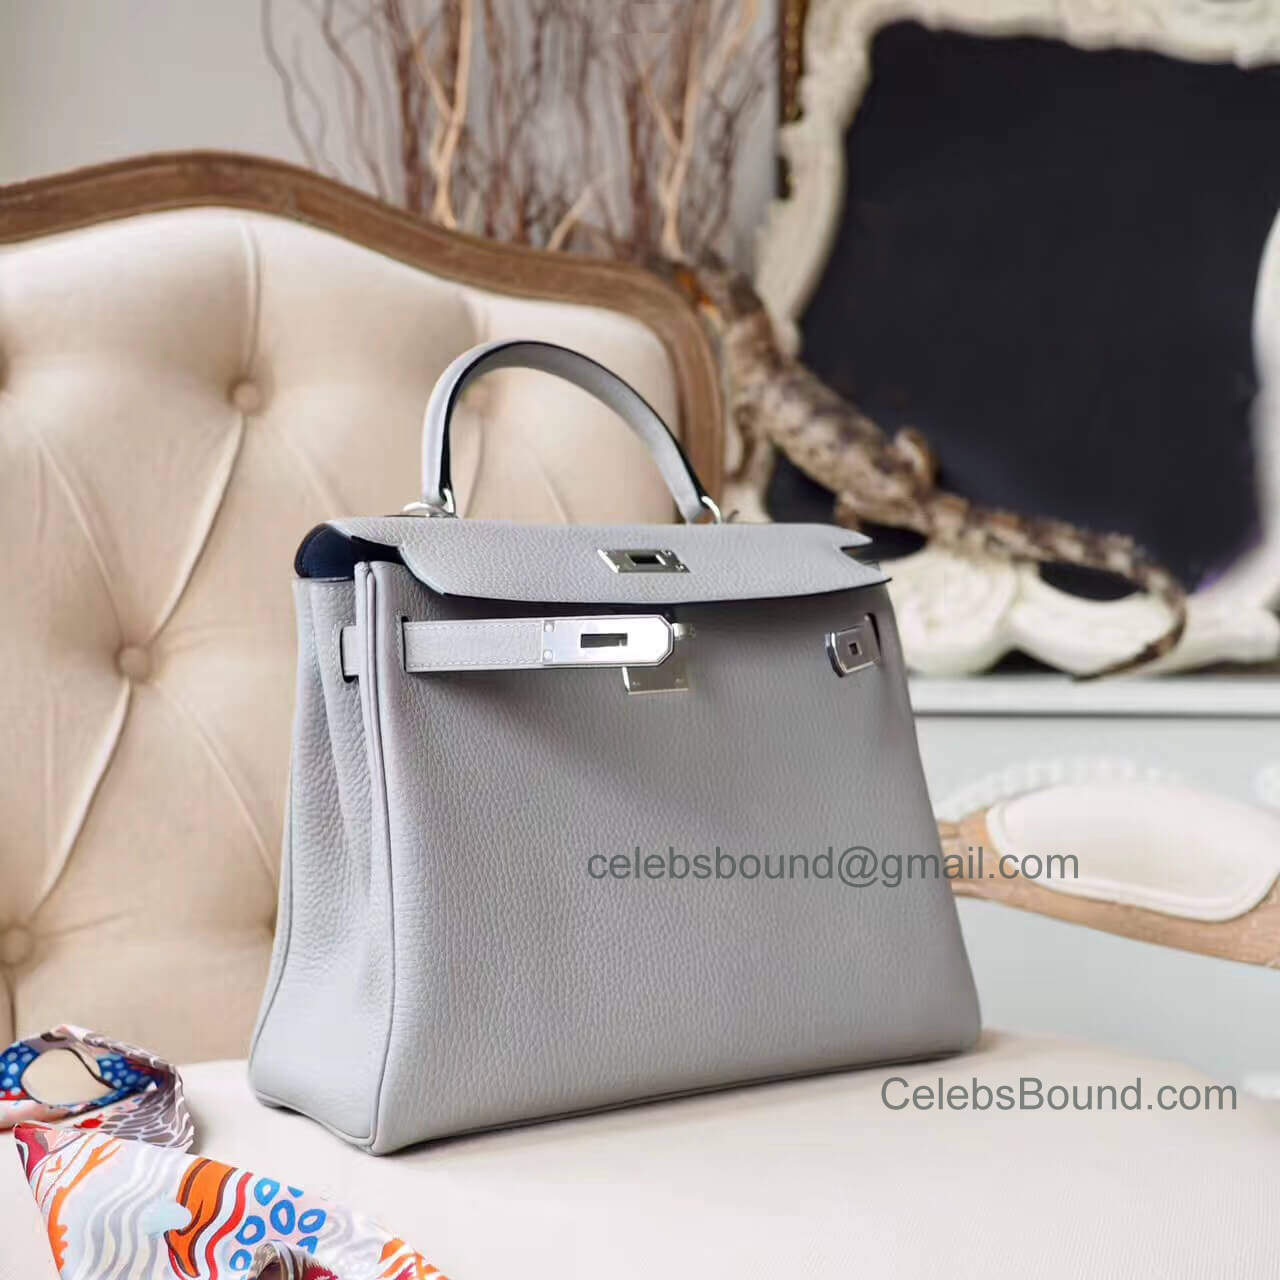 Hermes Kelly 28 Bag in Bicolored 4z Gris Mouette Togo PHW